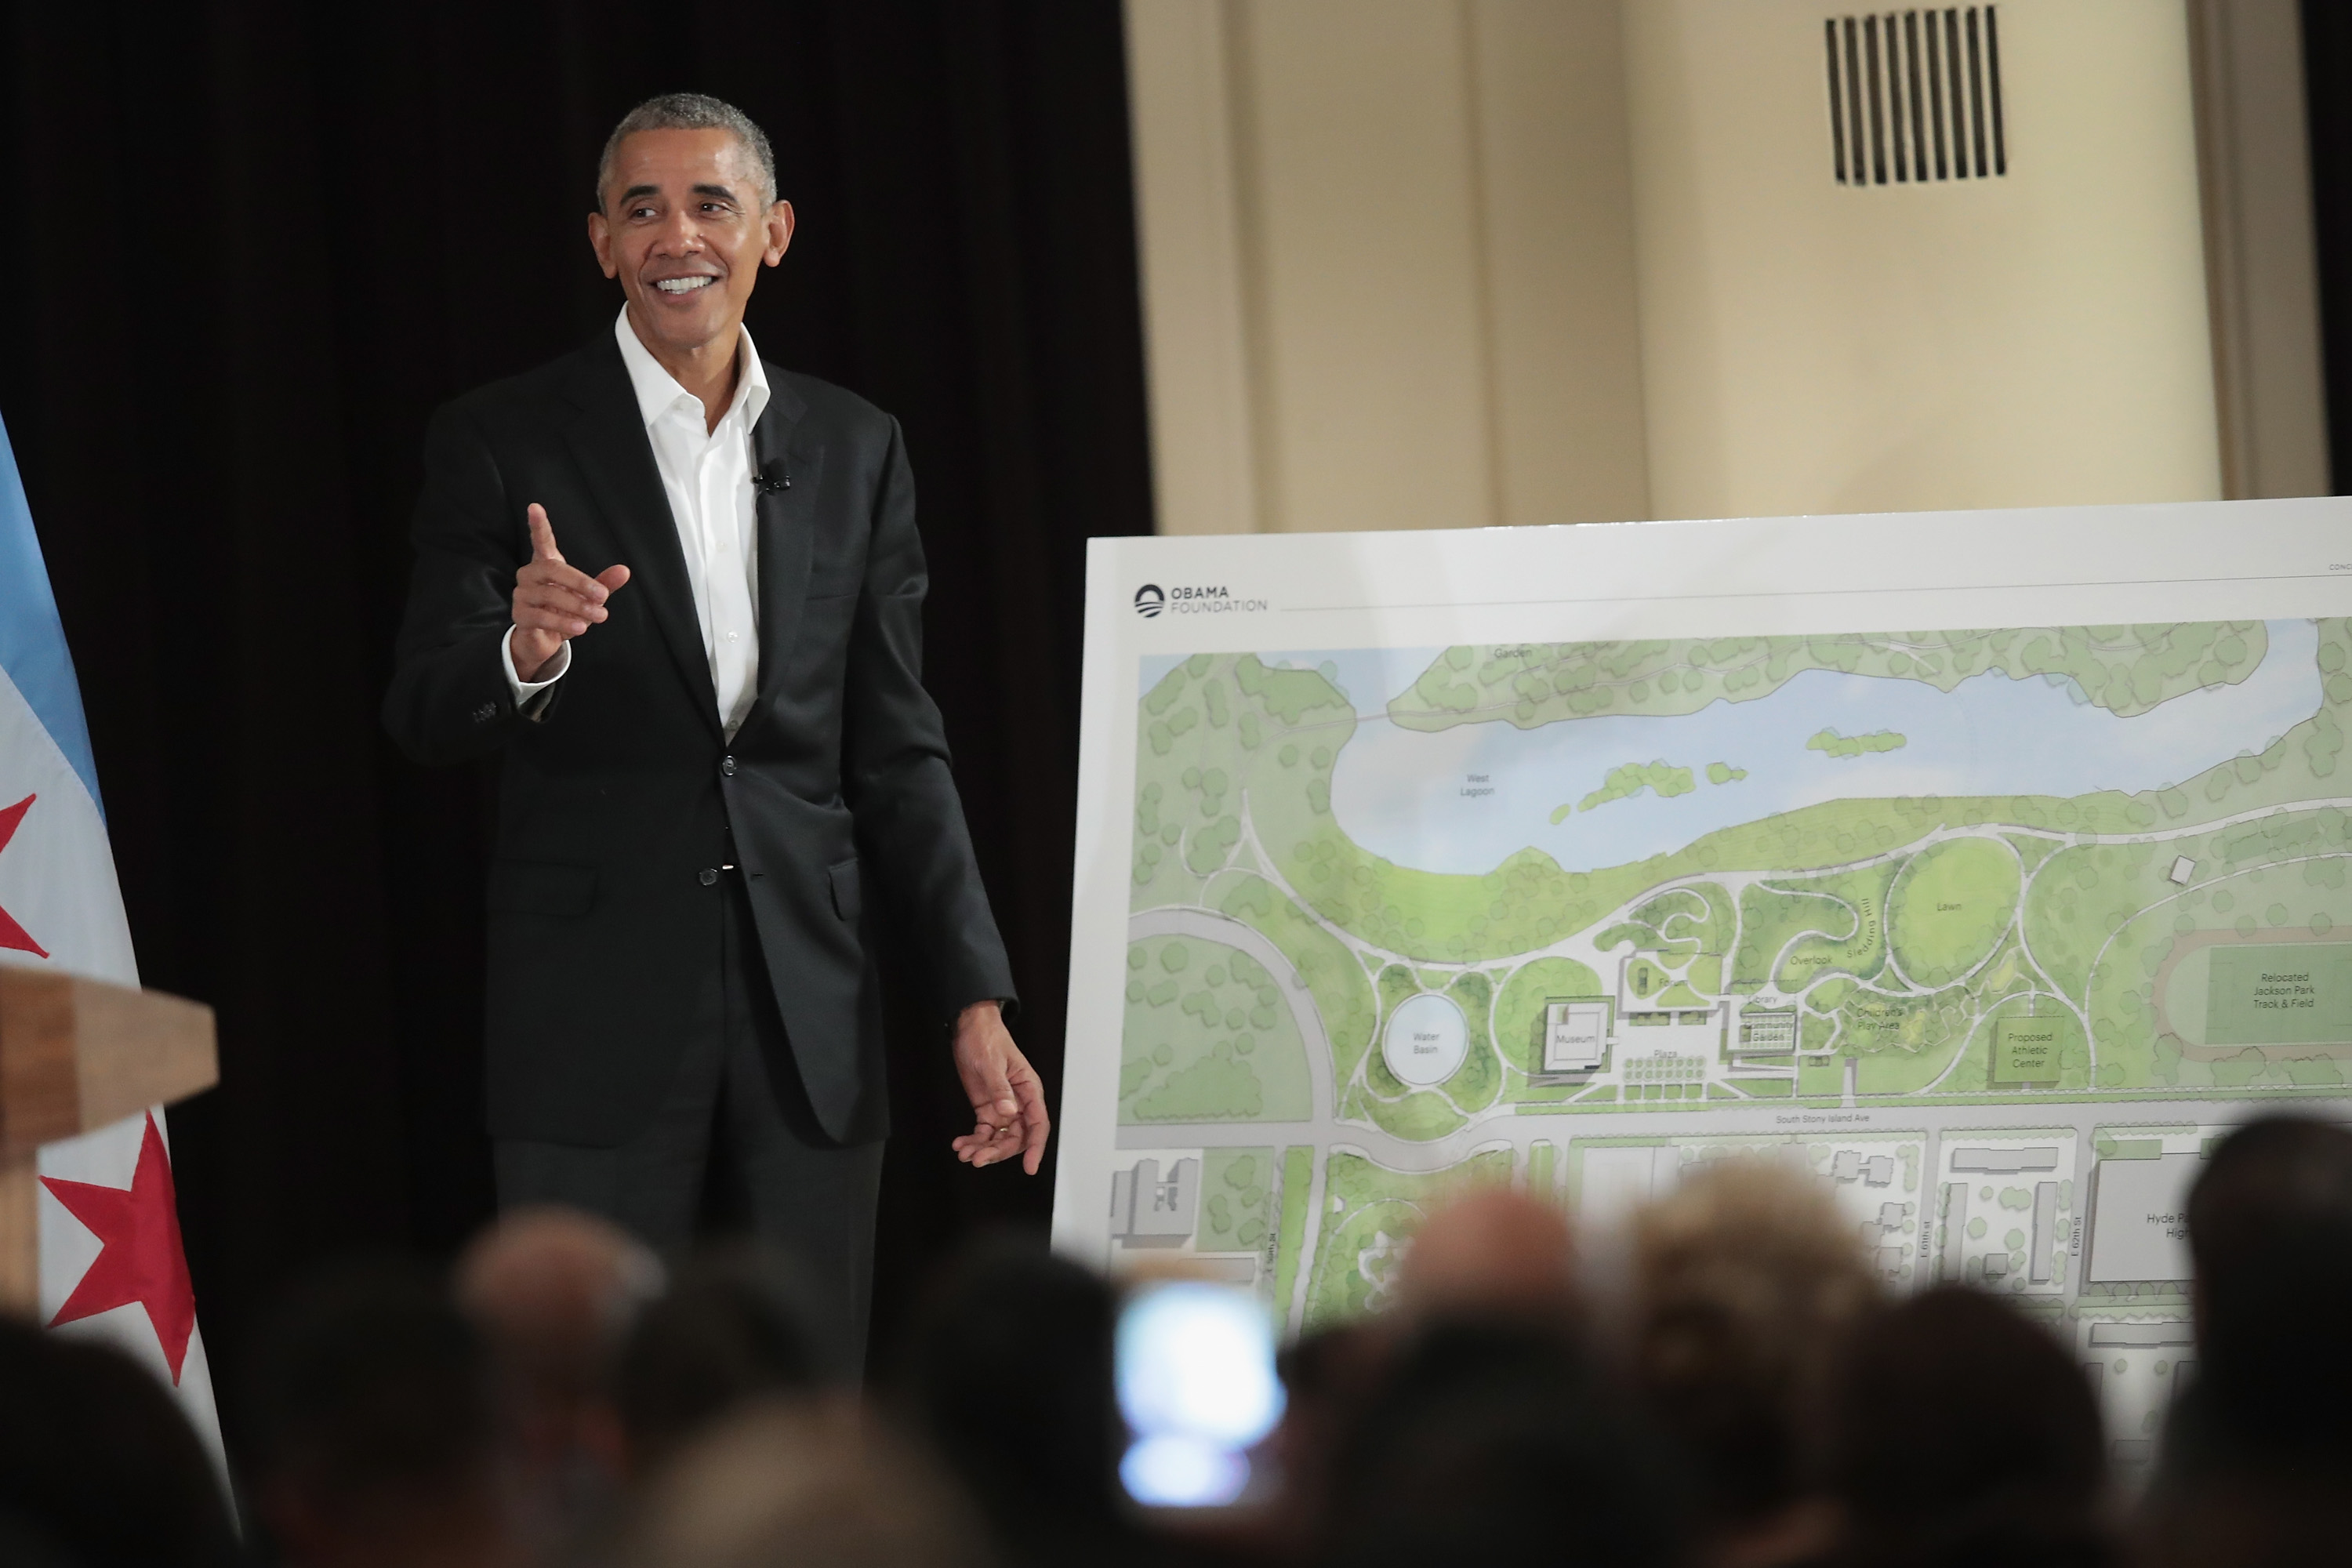 Nike announced its $5 million donation as they team up with the Obama Foundation to help build an athletic court in the Obama Presidential Center.